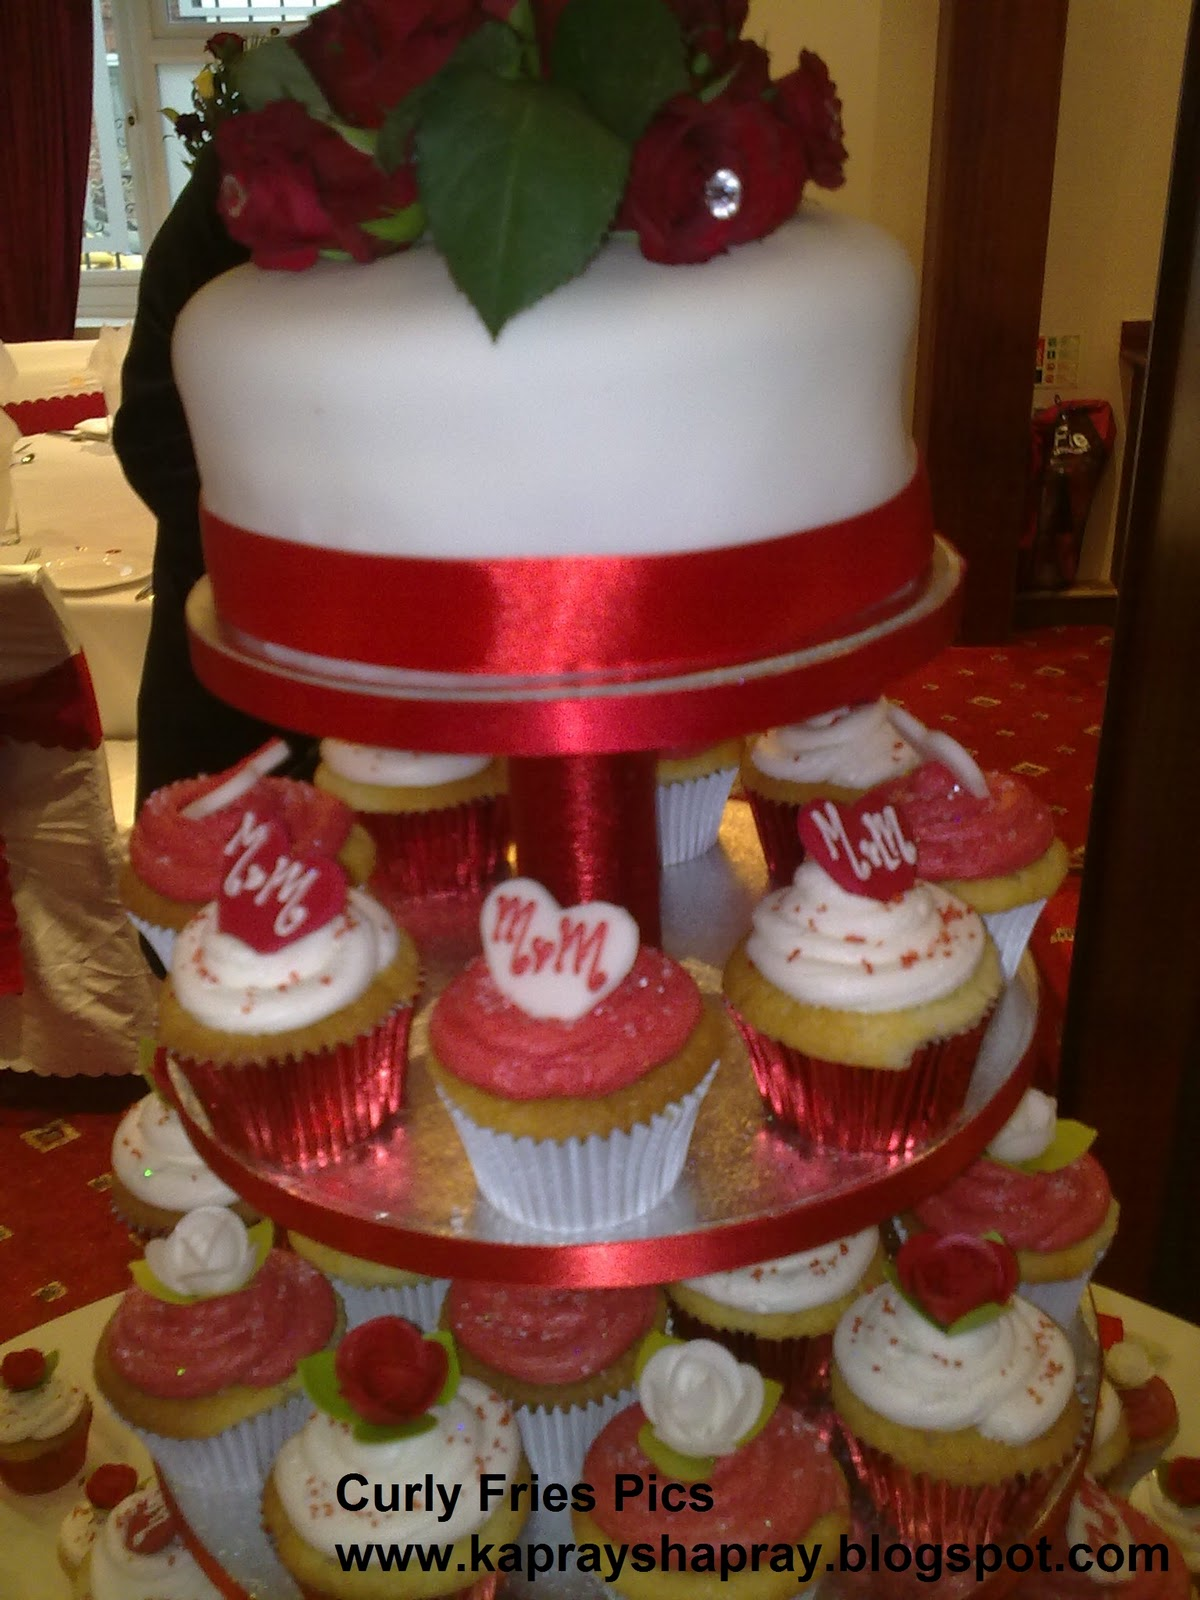 Fayeza ansari wedding cakes